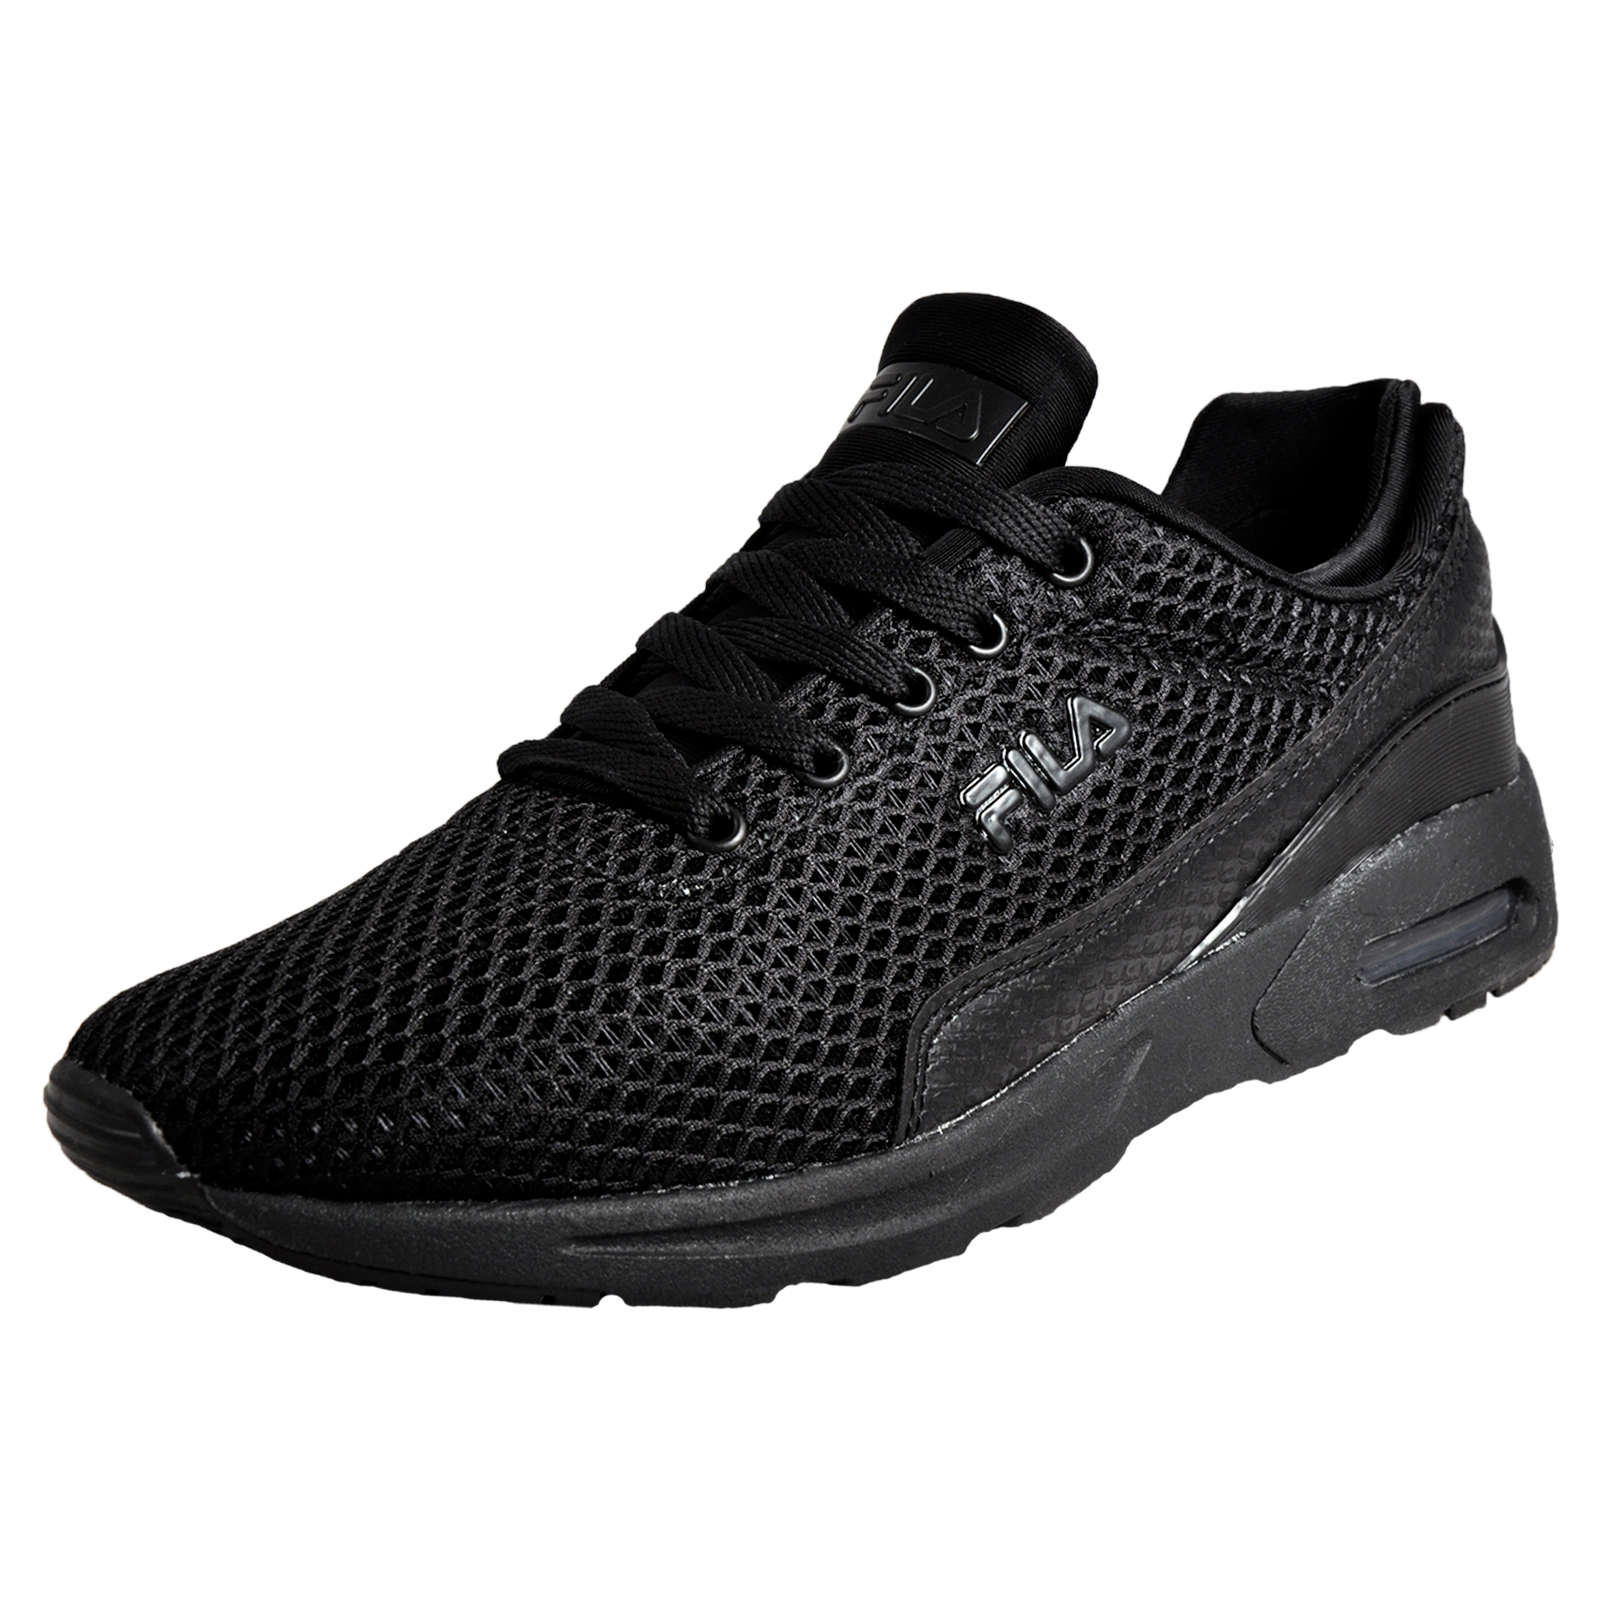 Womens Clearance Gym Shoes